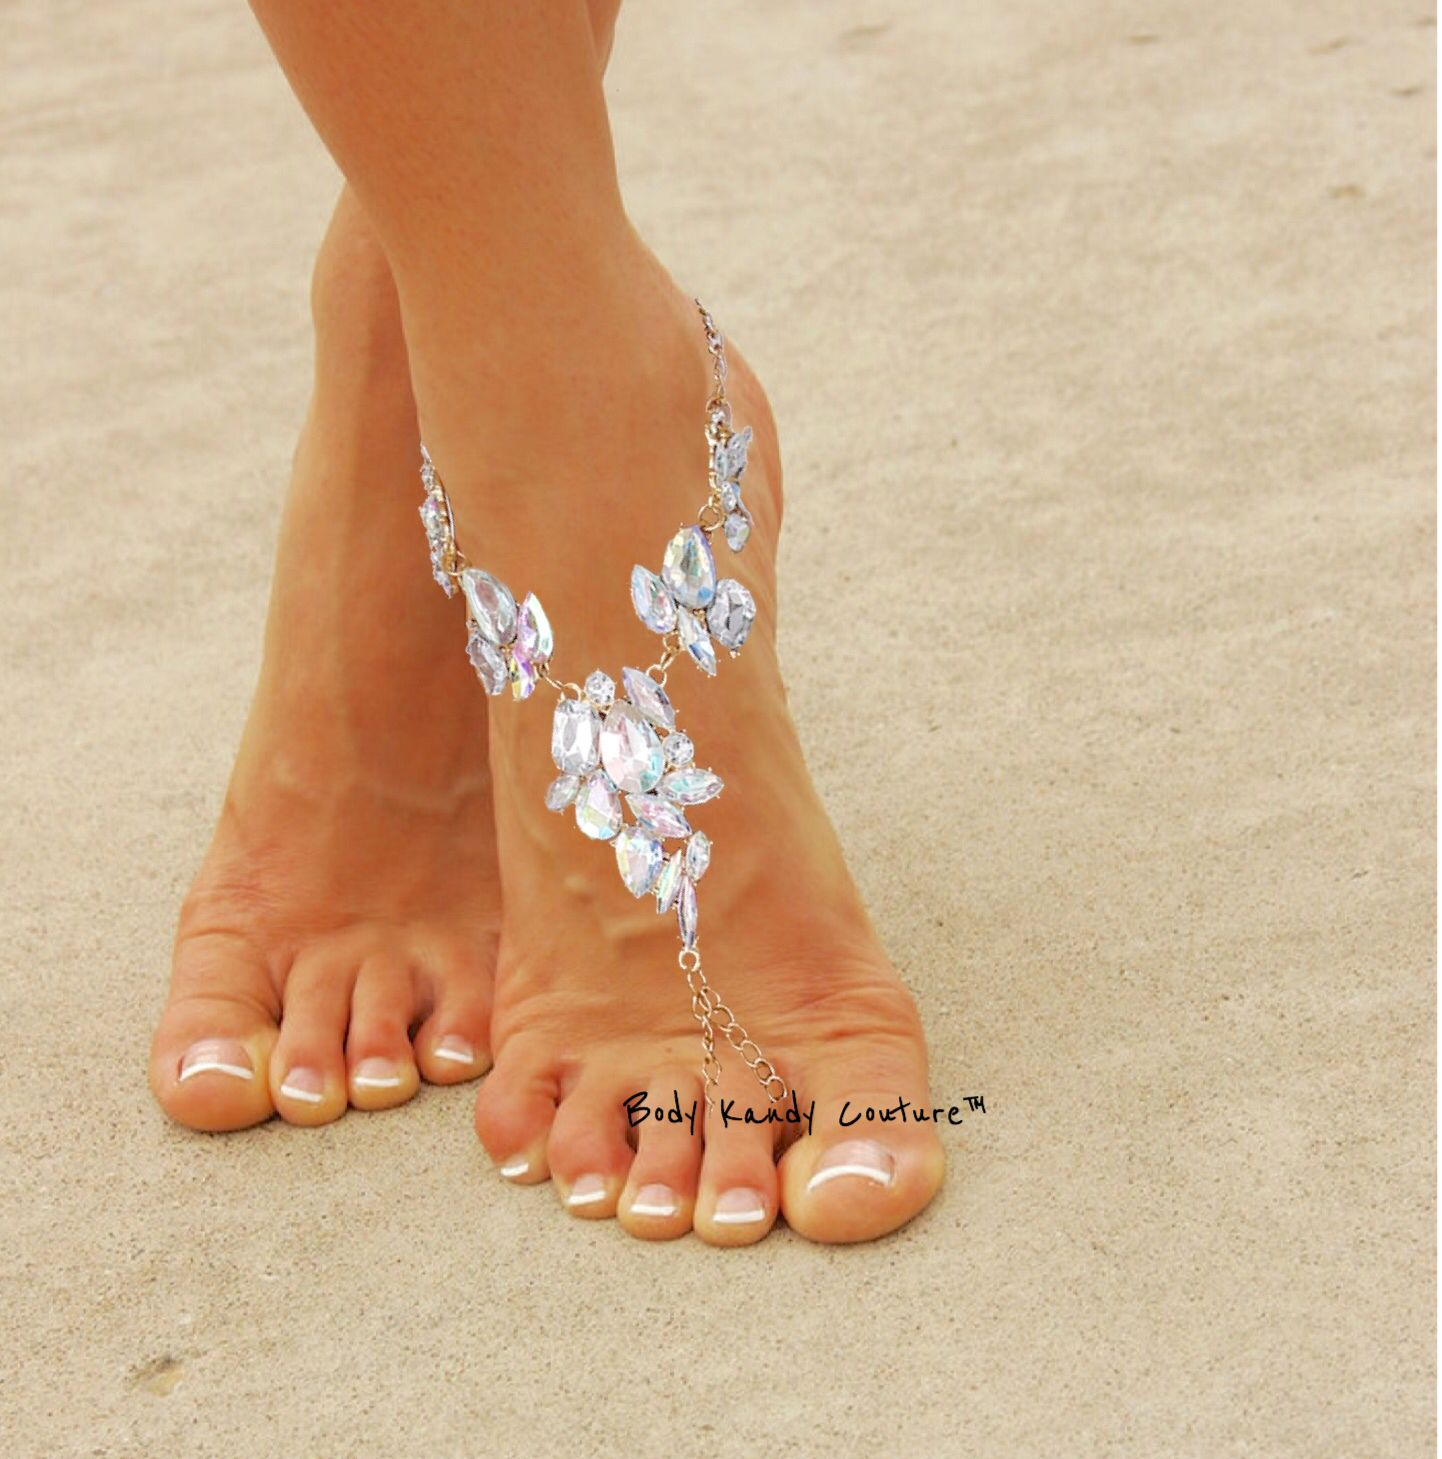 Barefoot Sandals Weddings Beach Bridal Foot Jewelry Beaded